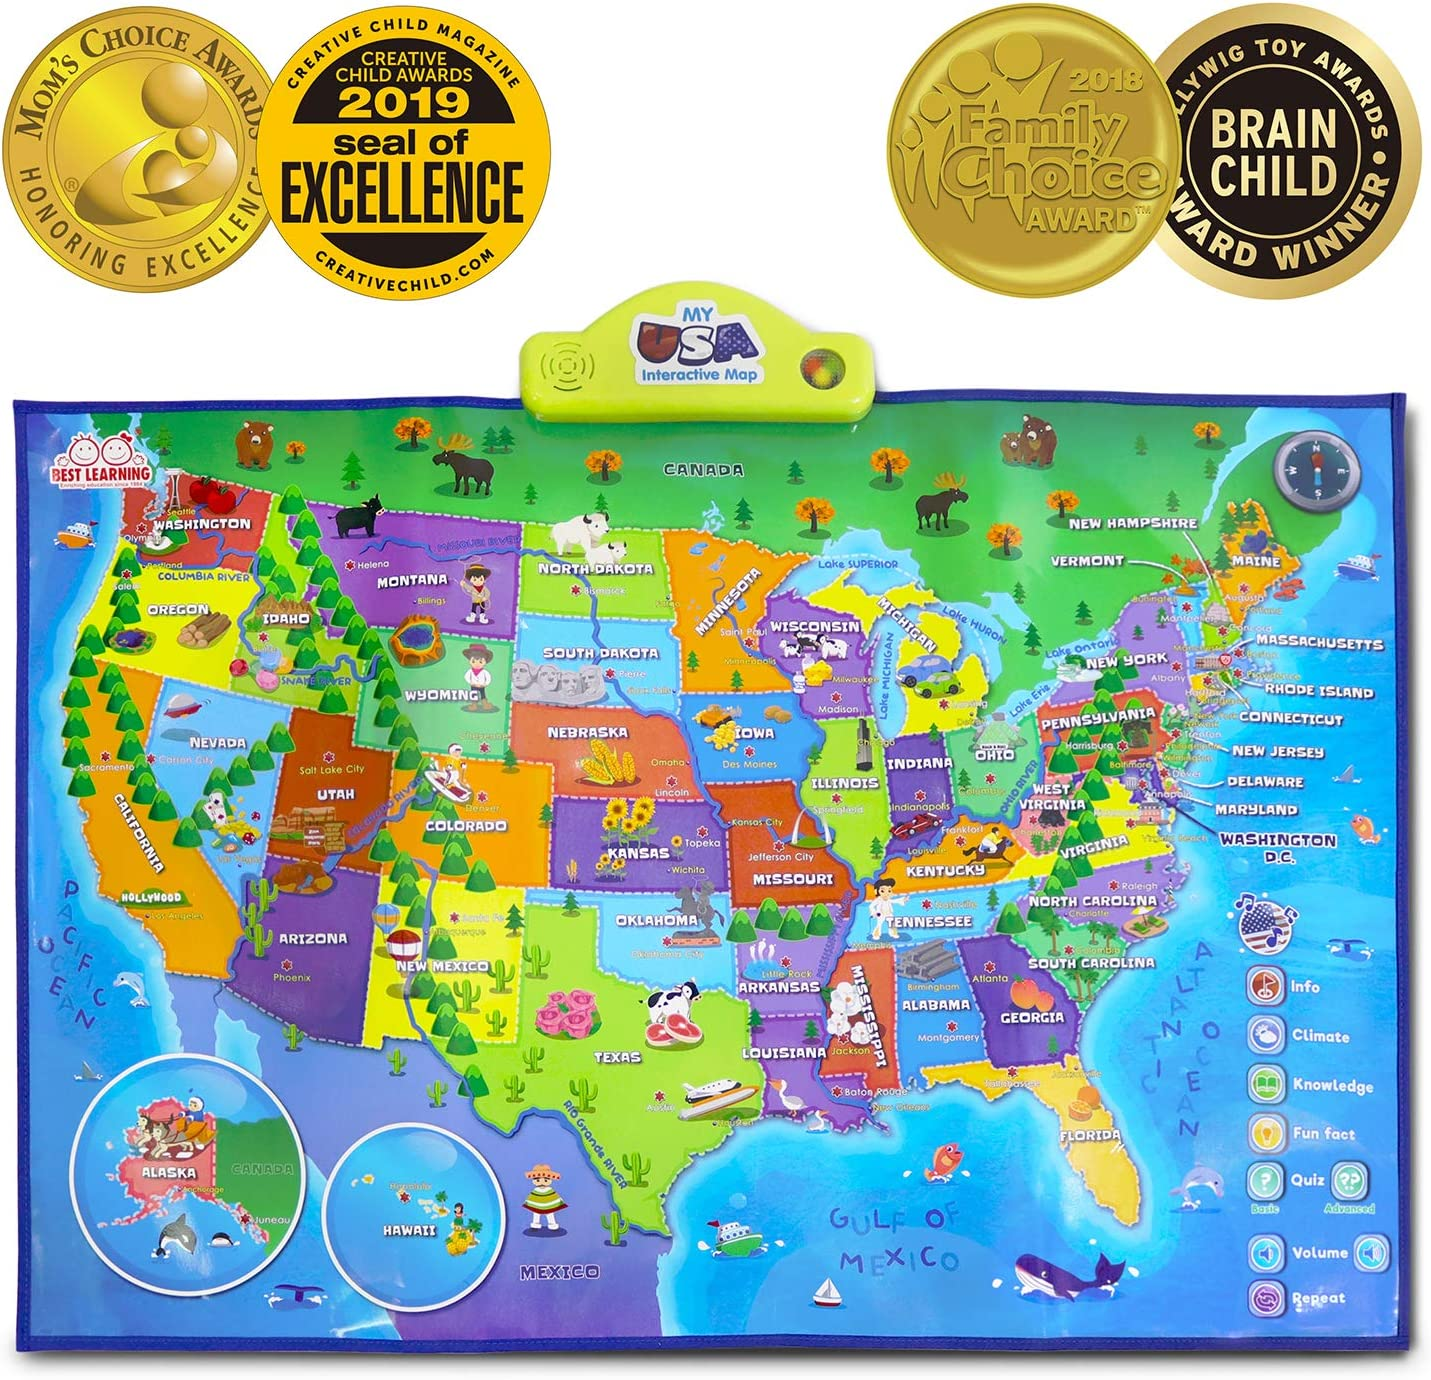 Full Interactive Map Of Usa.Amazon Com Best Learning I Poster My Usa Interactive Map